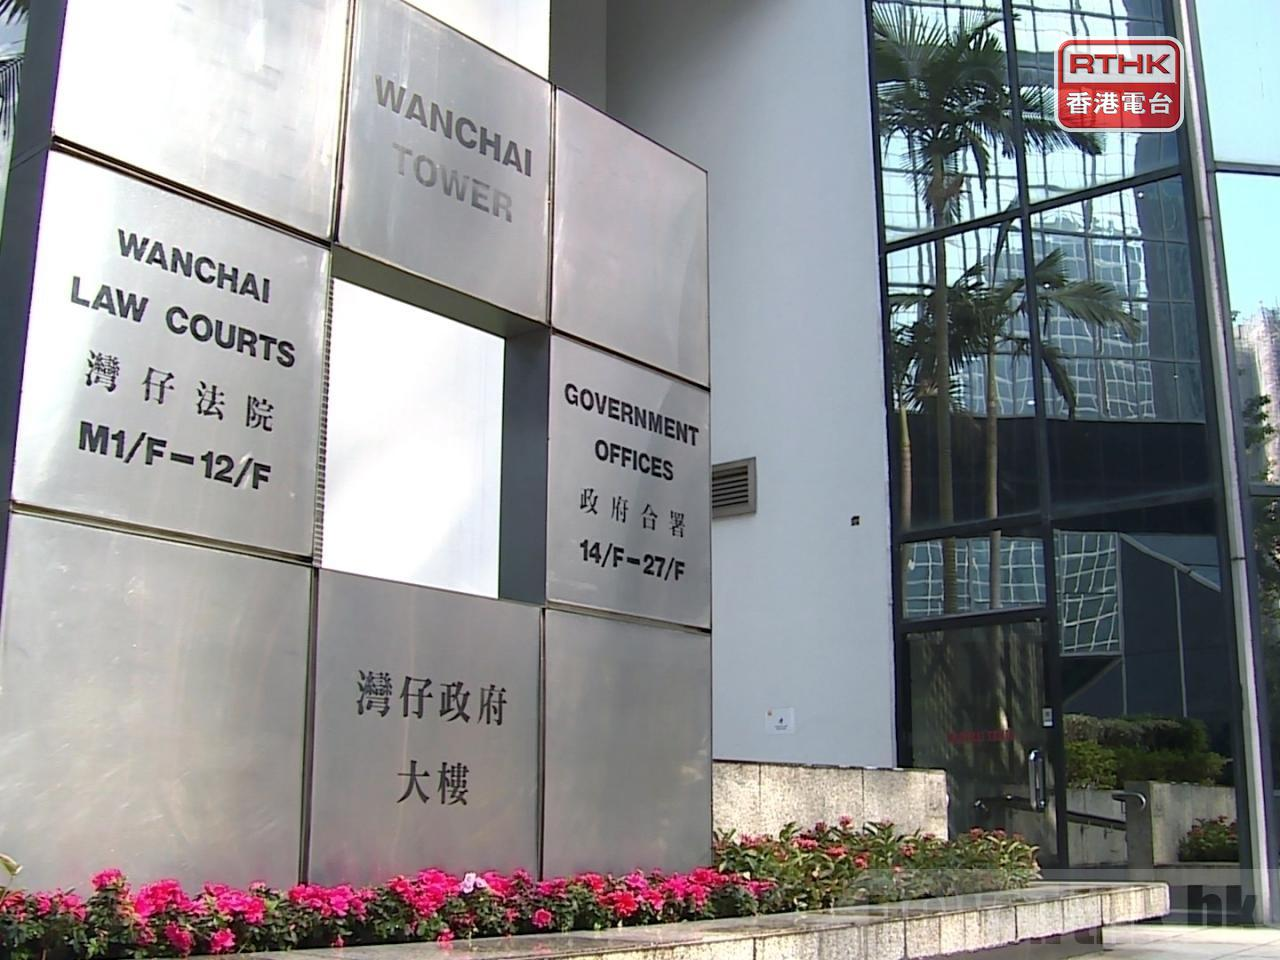 """Judge Amanda Woodcock says the defendants had """"wrongly and arrogantly"""" believed their cause was more important than protecting the community from a public health crisis. File photo: RTHK"""